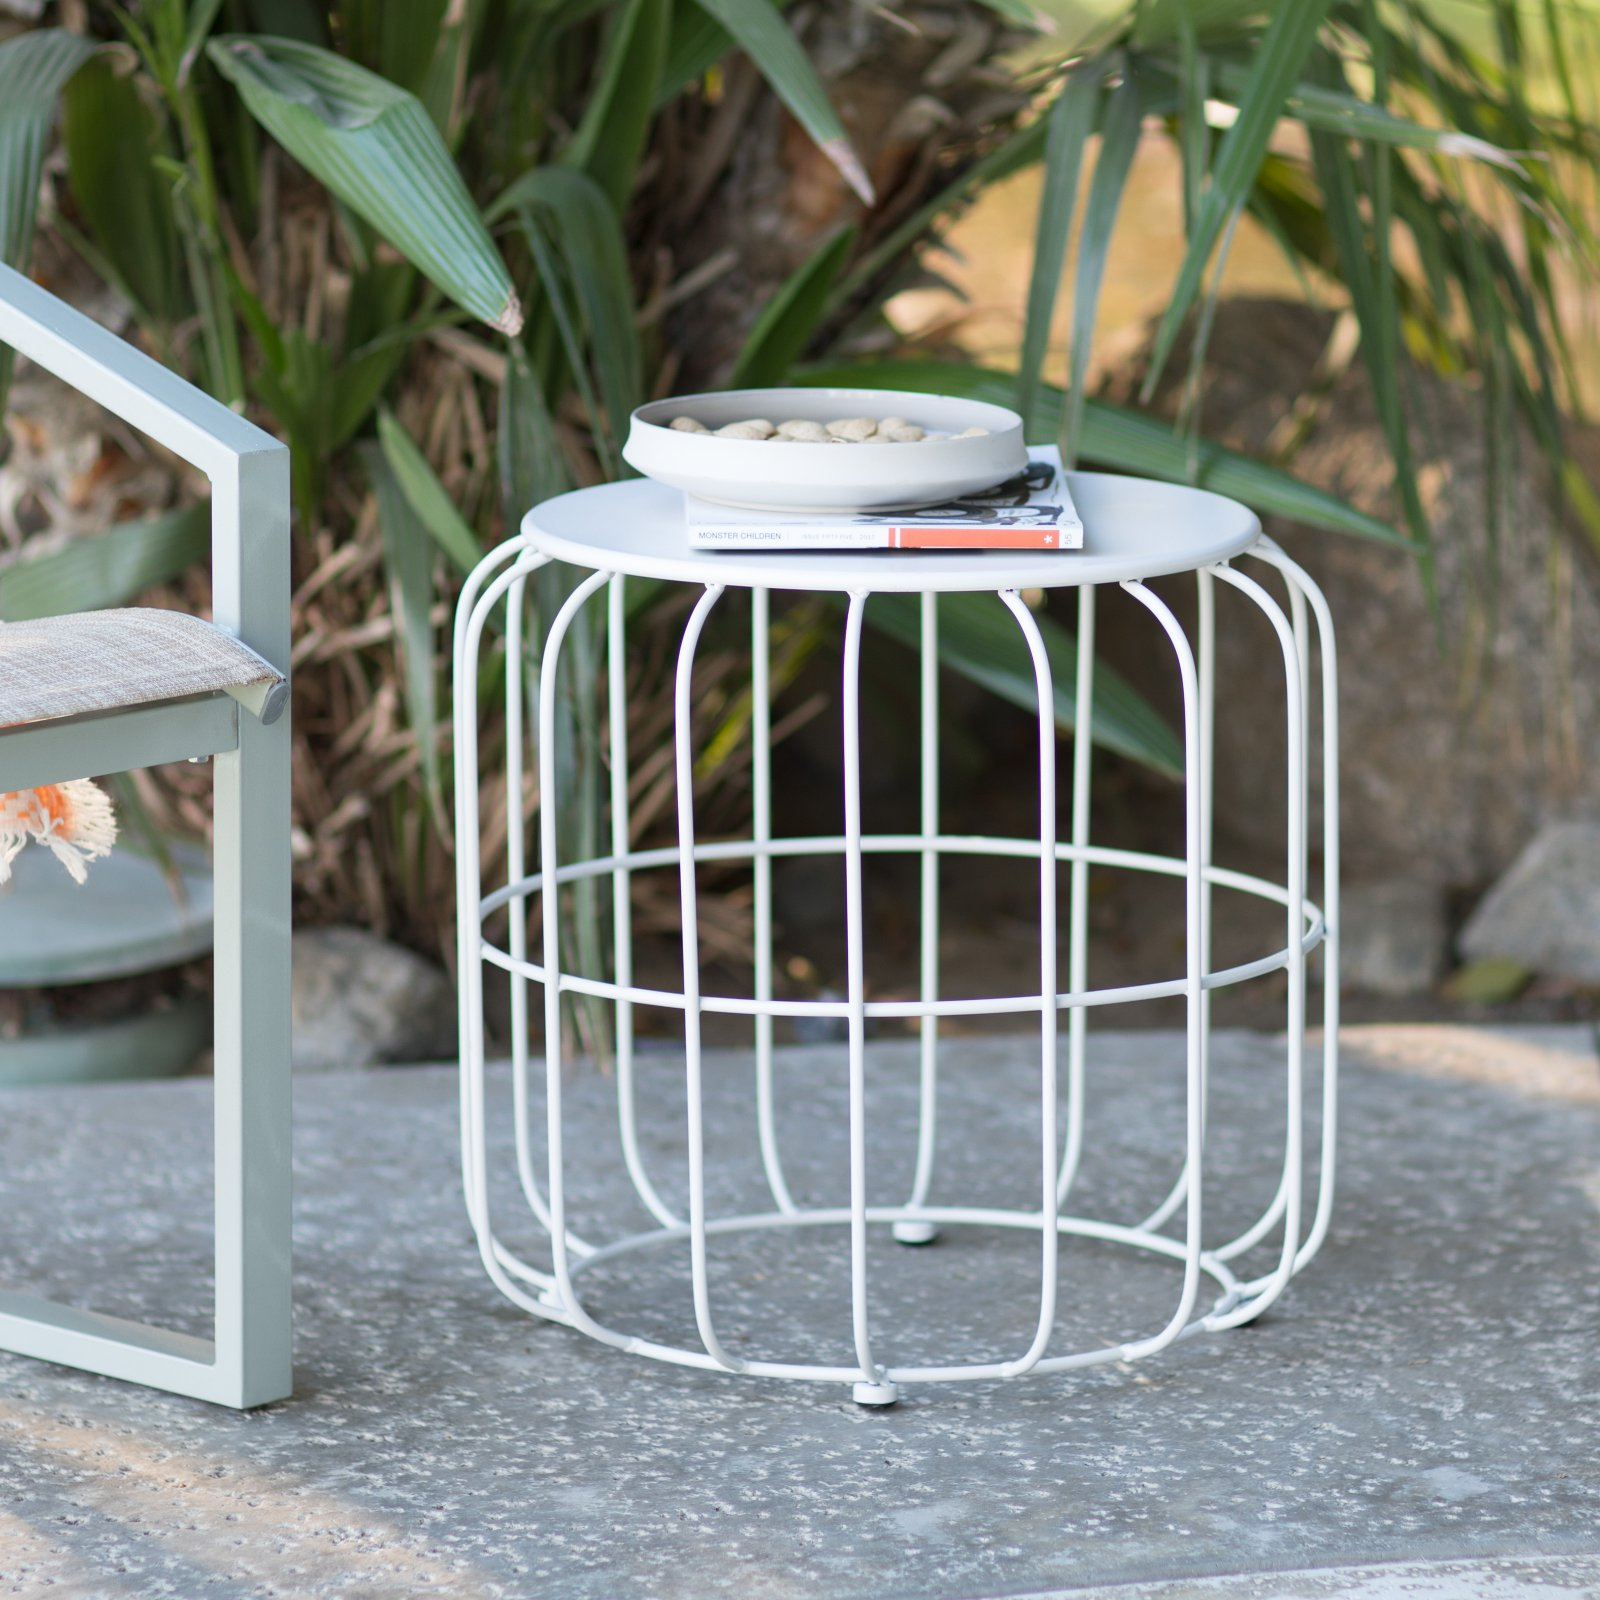 Coral Coast Abbeston Steel Wire Patio Side Table by Shenzhen Sunwell Industrial Co Ltd